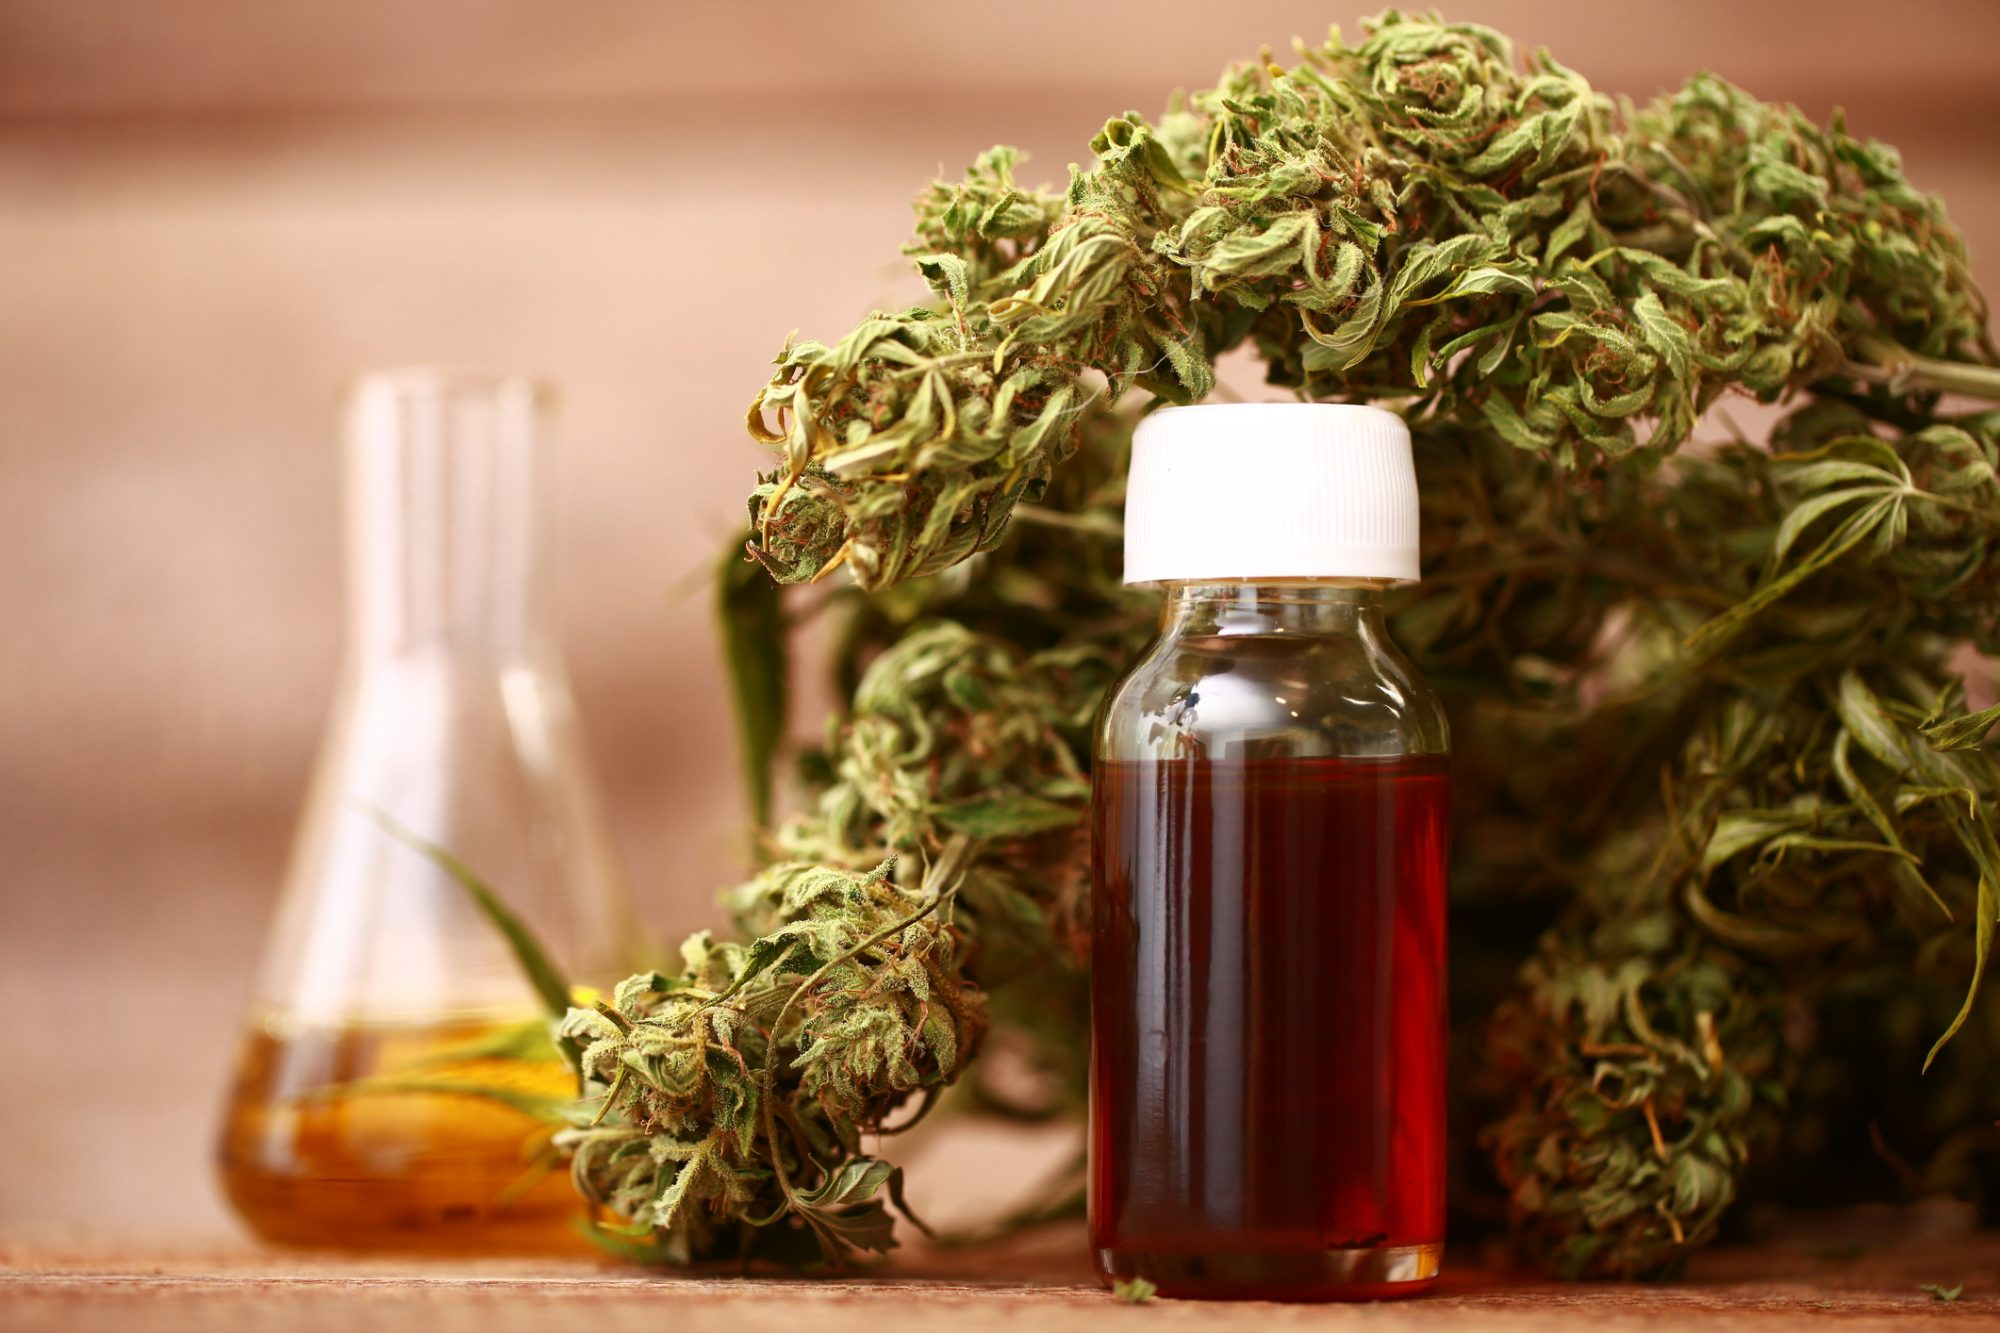 Beyond pain relief and mental health: The science behind CBD oil